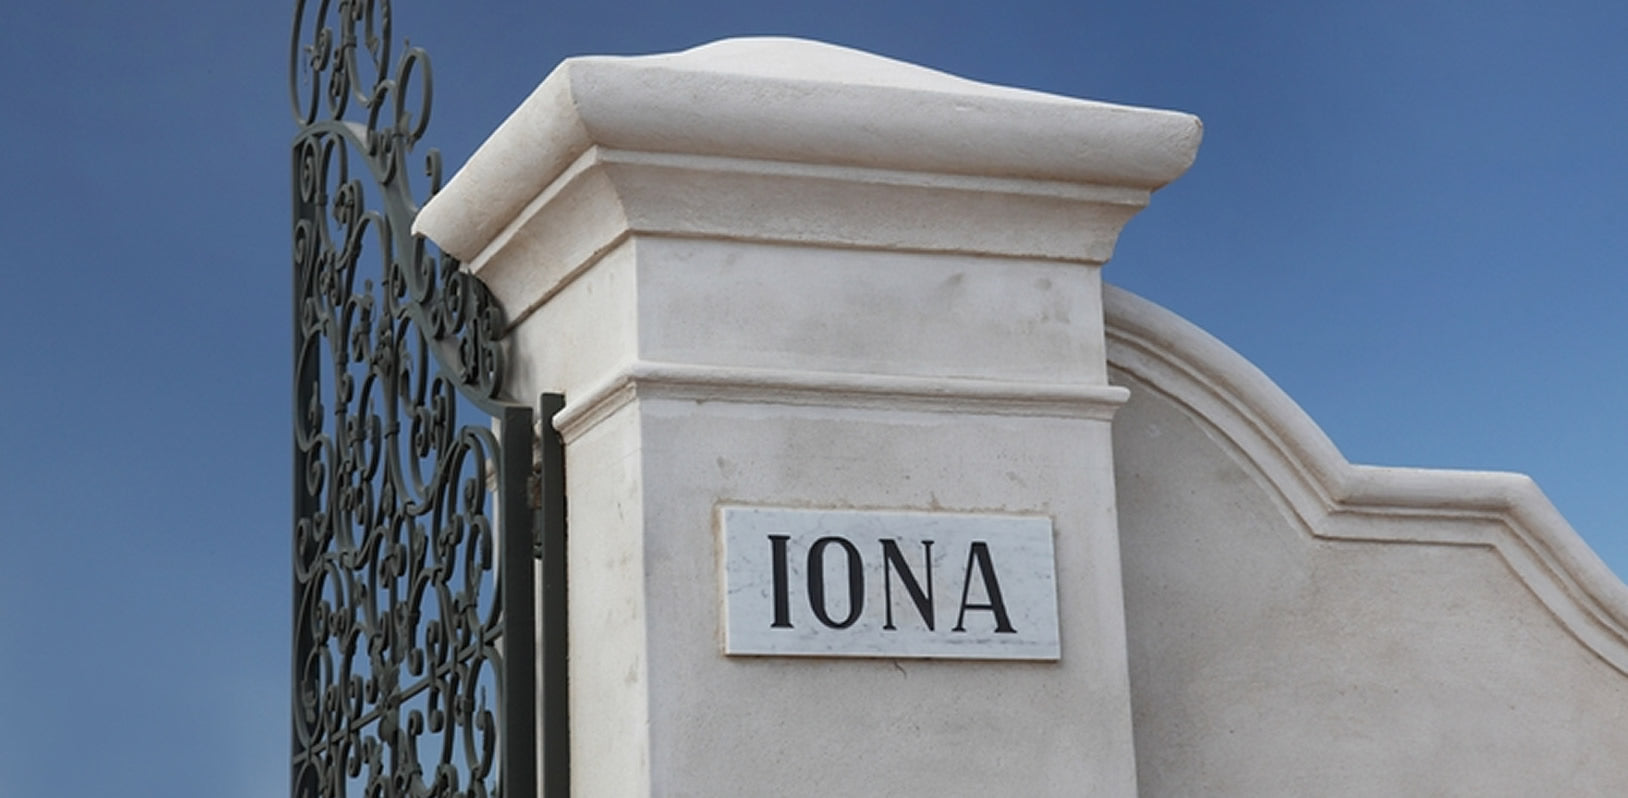 Iona gatepost sign